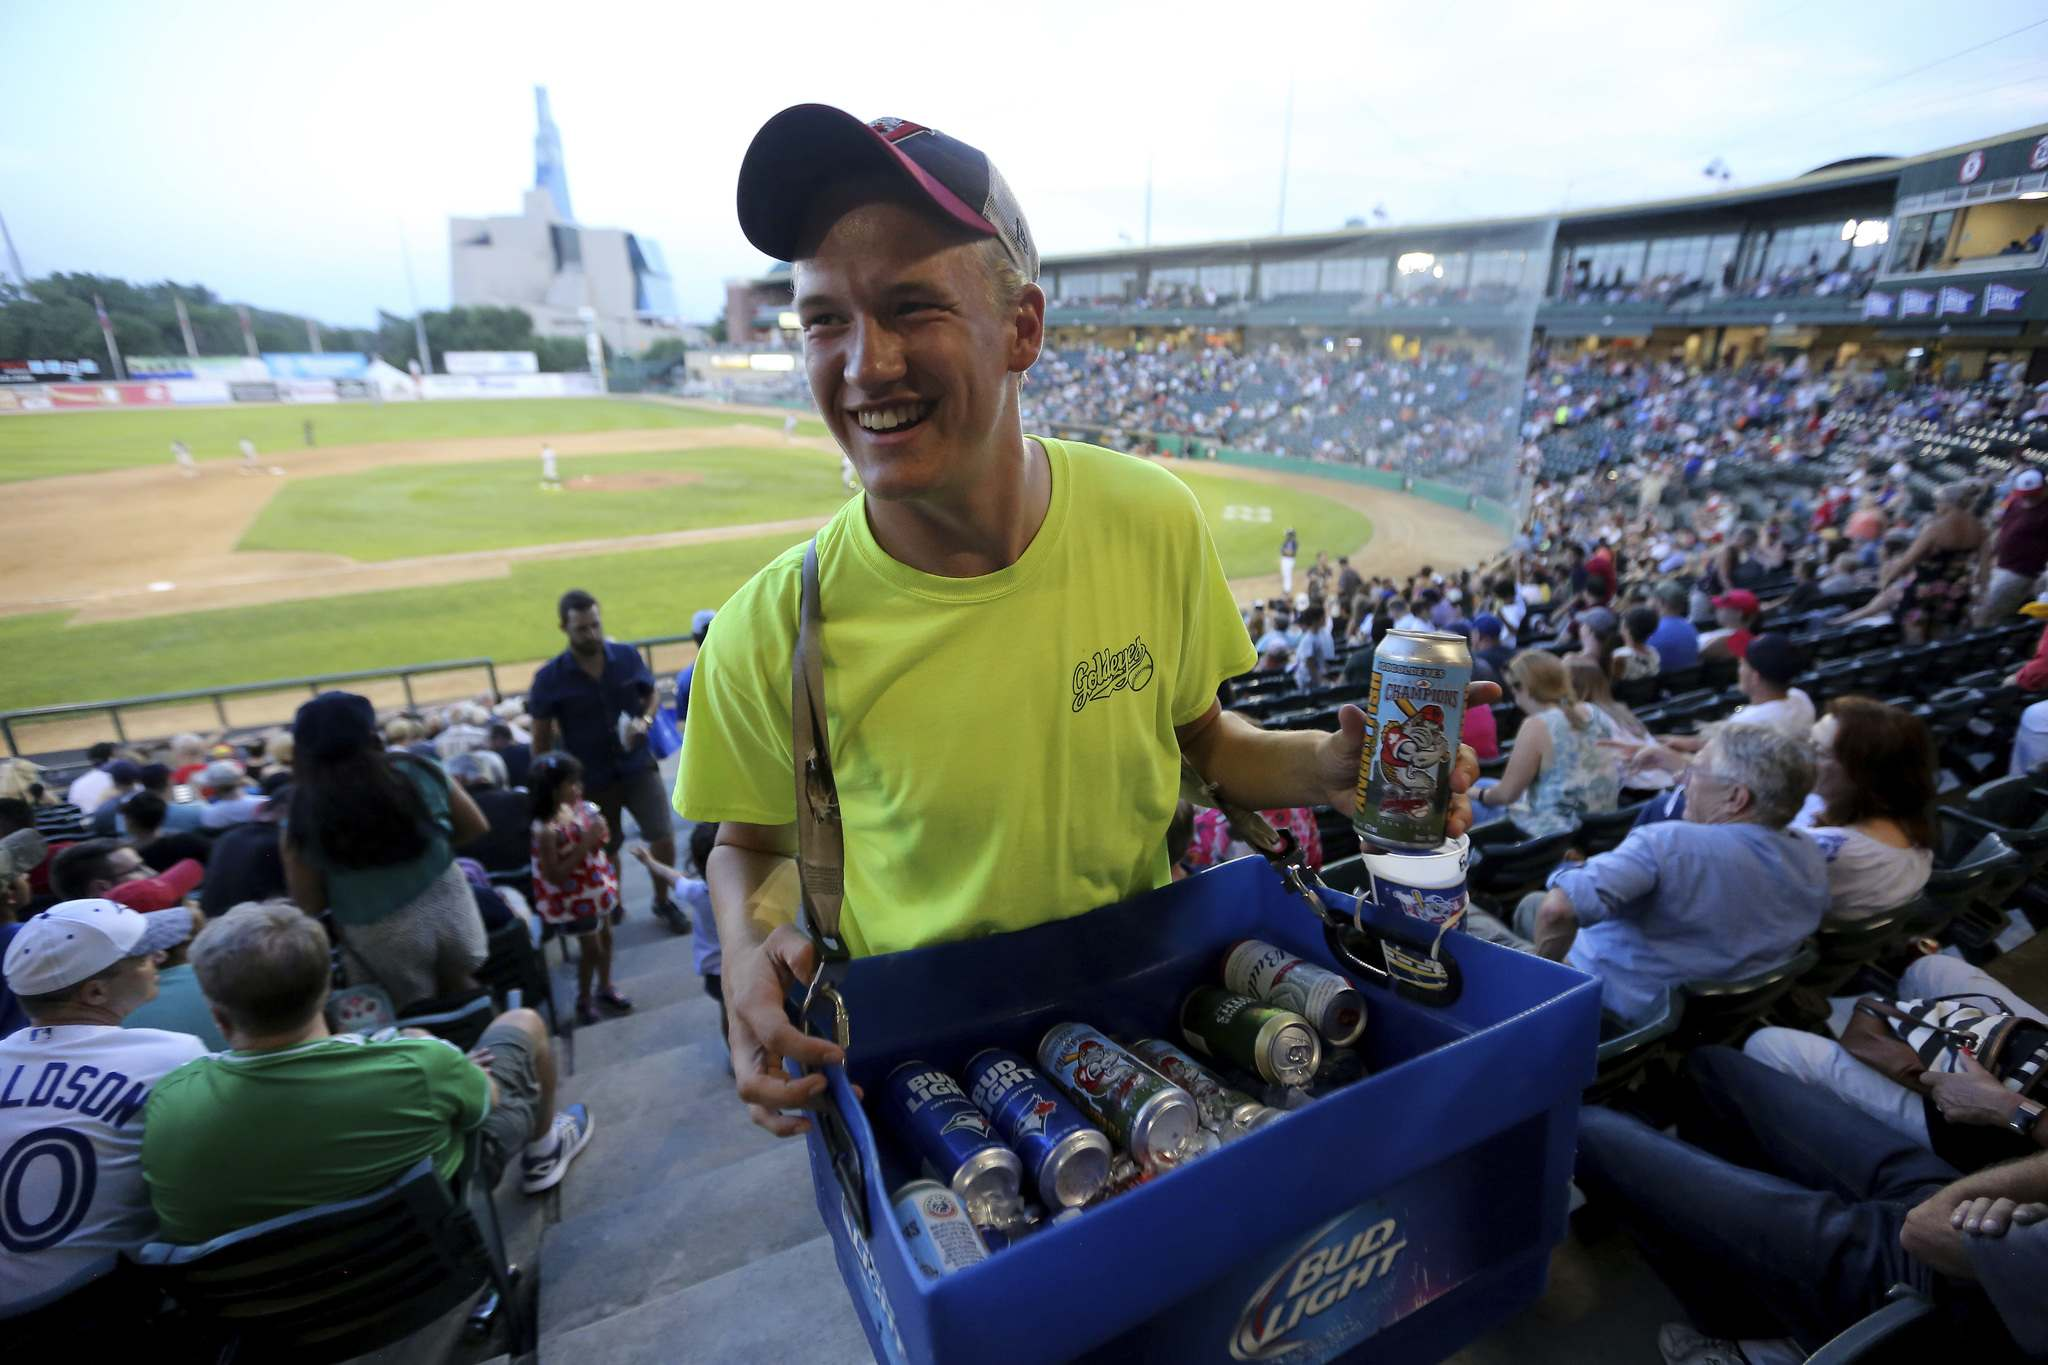 Jakob Sanderson, 21, selling beer during the Goldeyes game.